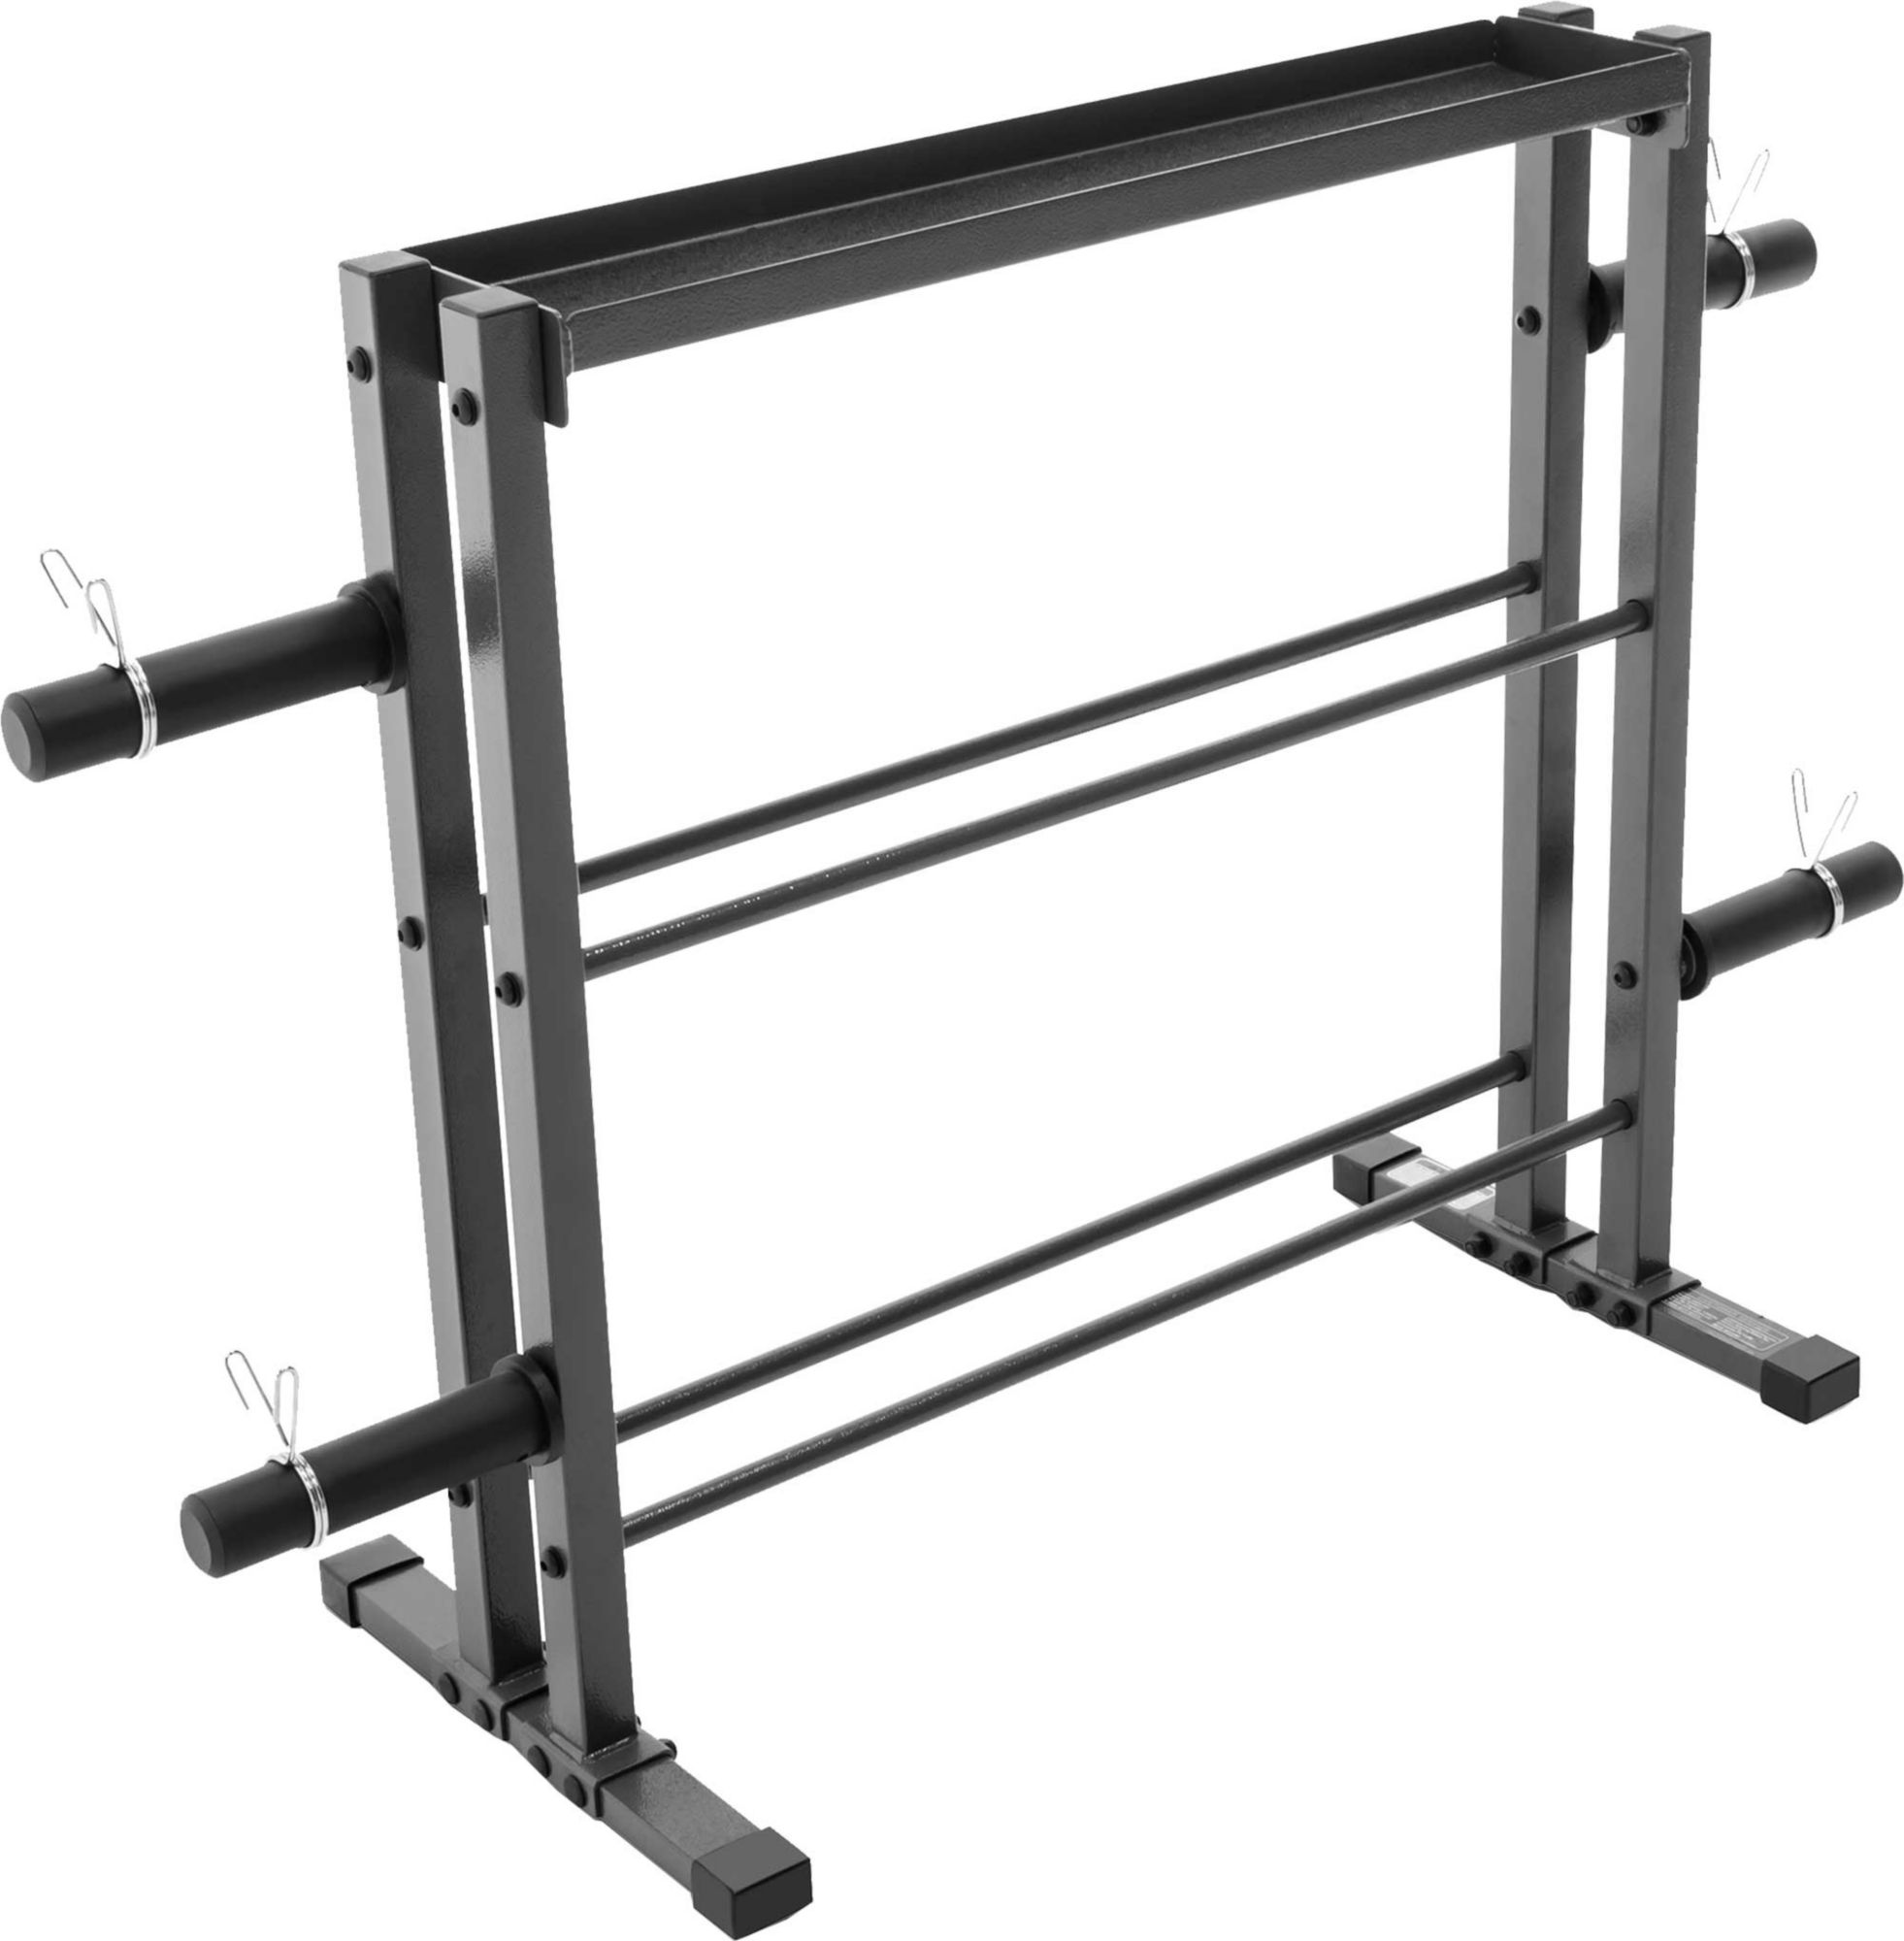 multilevel sporting tier rack sports gym hand racks outdoors dumbbell stand tibs tower storage weight goods for organization free crown product